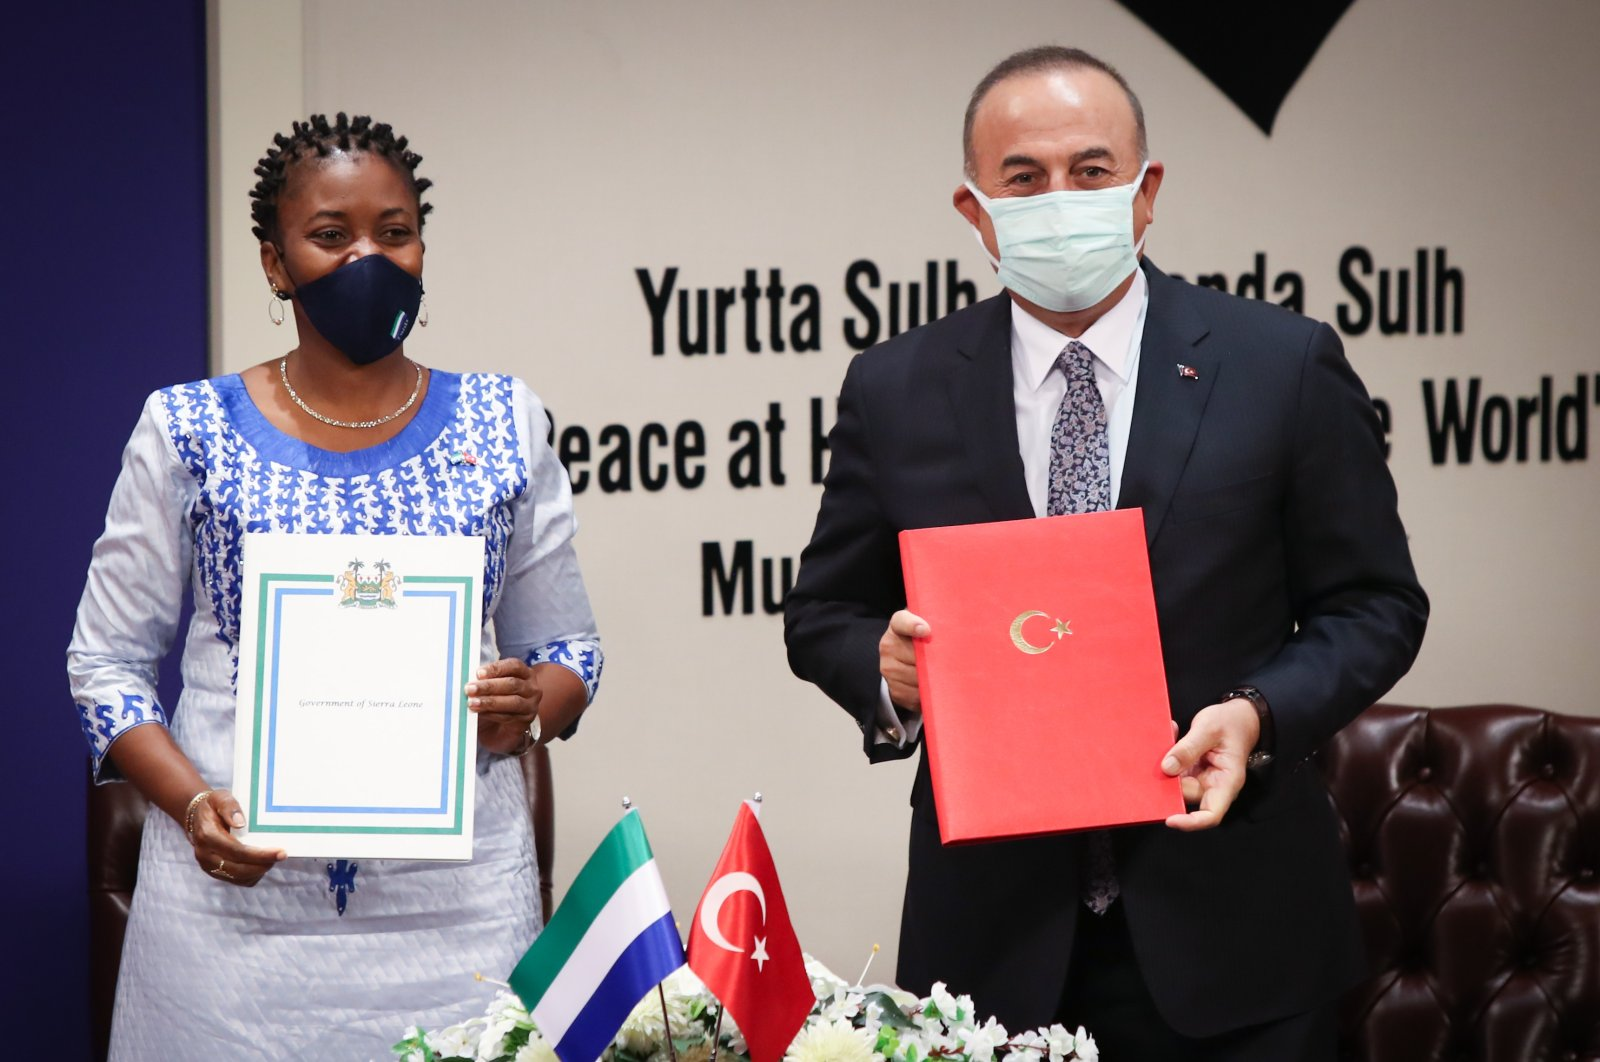 International Cooperation and Foreign Minister of Sierra Leone Nabeela Tunis and Turkish Foreign Minister Mevlüt Çavuşoğlu met in Ankara to sign three cooperation agreements, Nov. 3, 2020. (AA Photo)